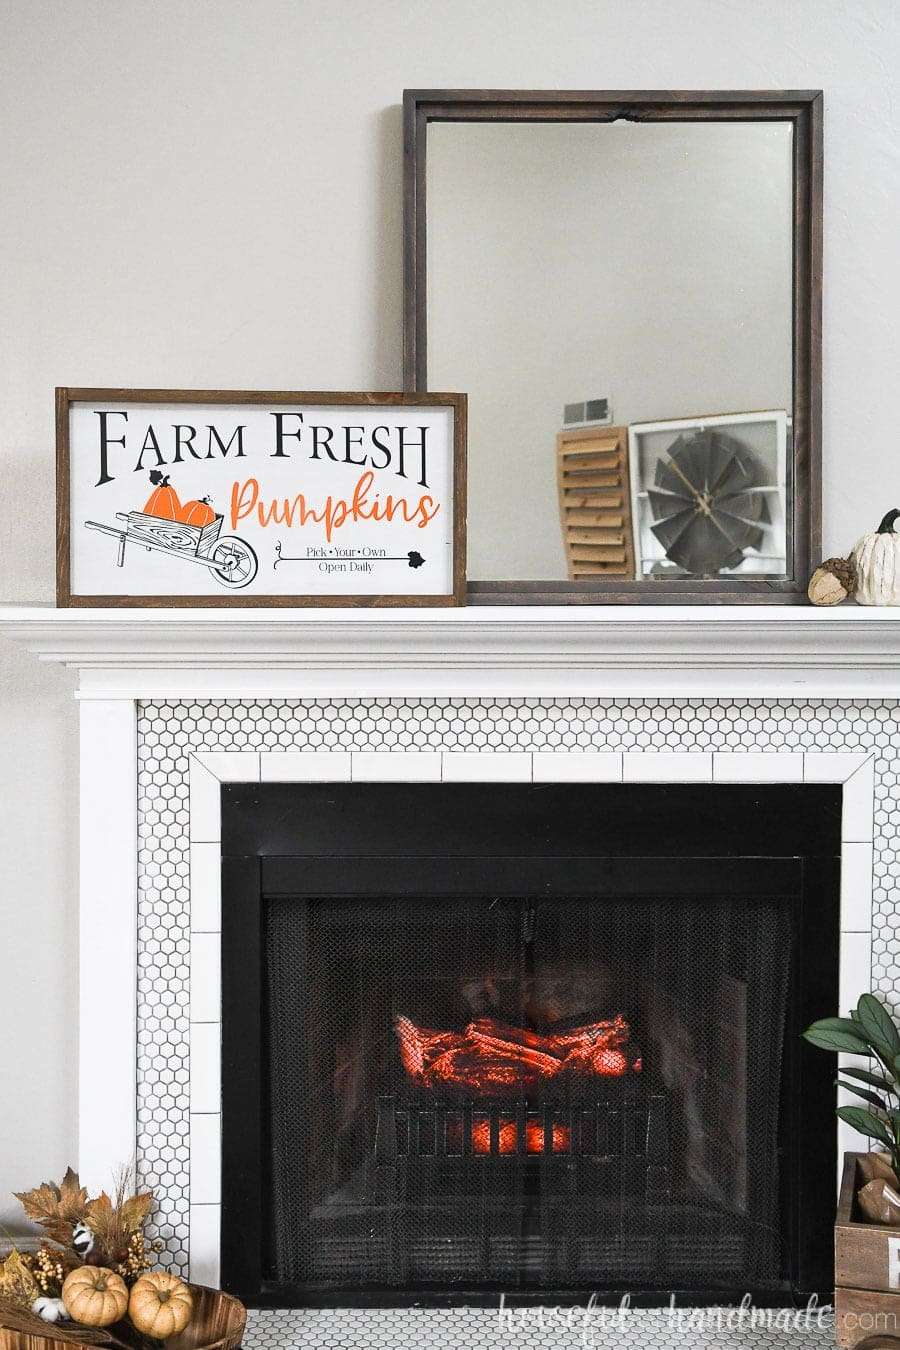 Mantel with fall decoration on it: a wood pumpkin patch sign, pumpkin, acorn, mirror, and fall leaves.